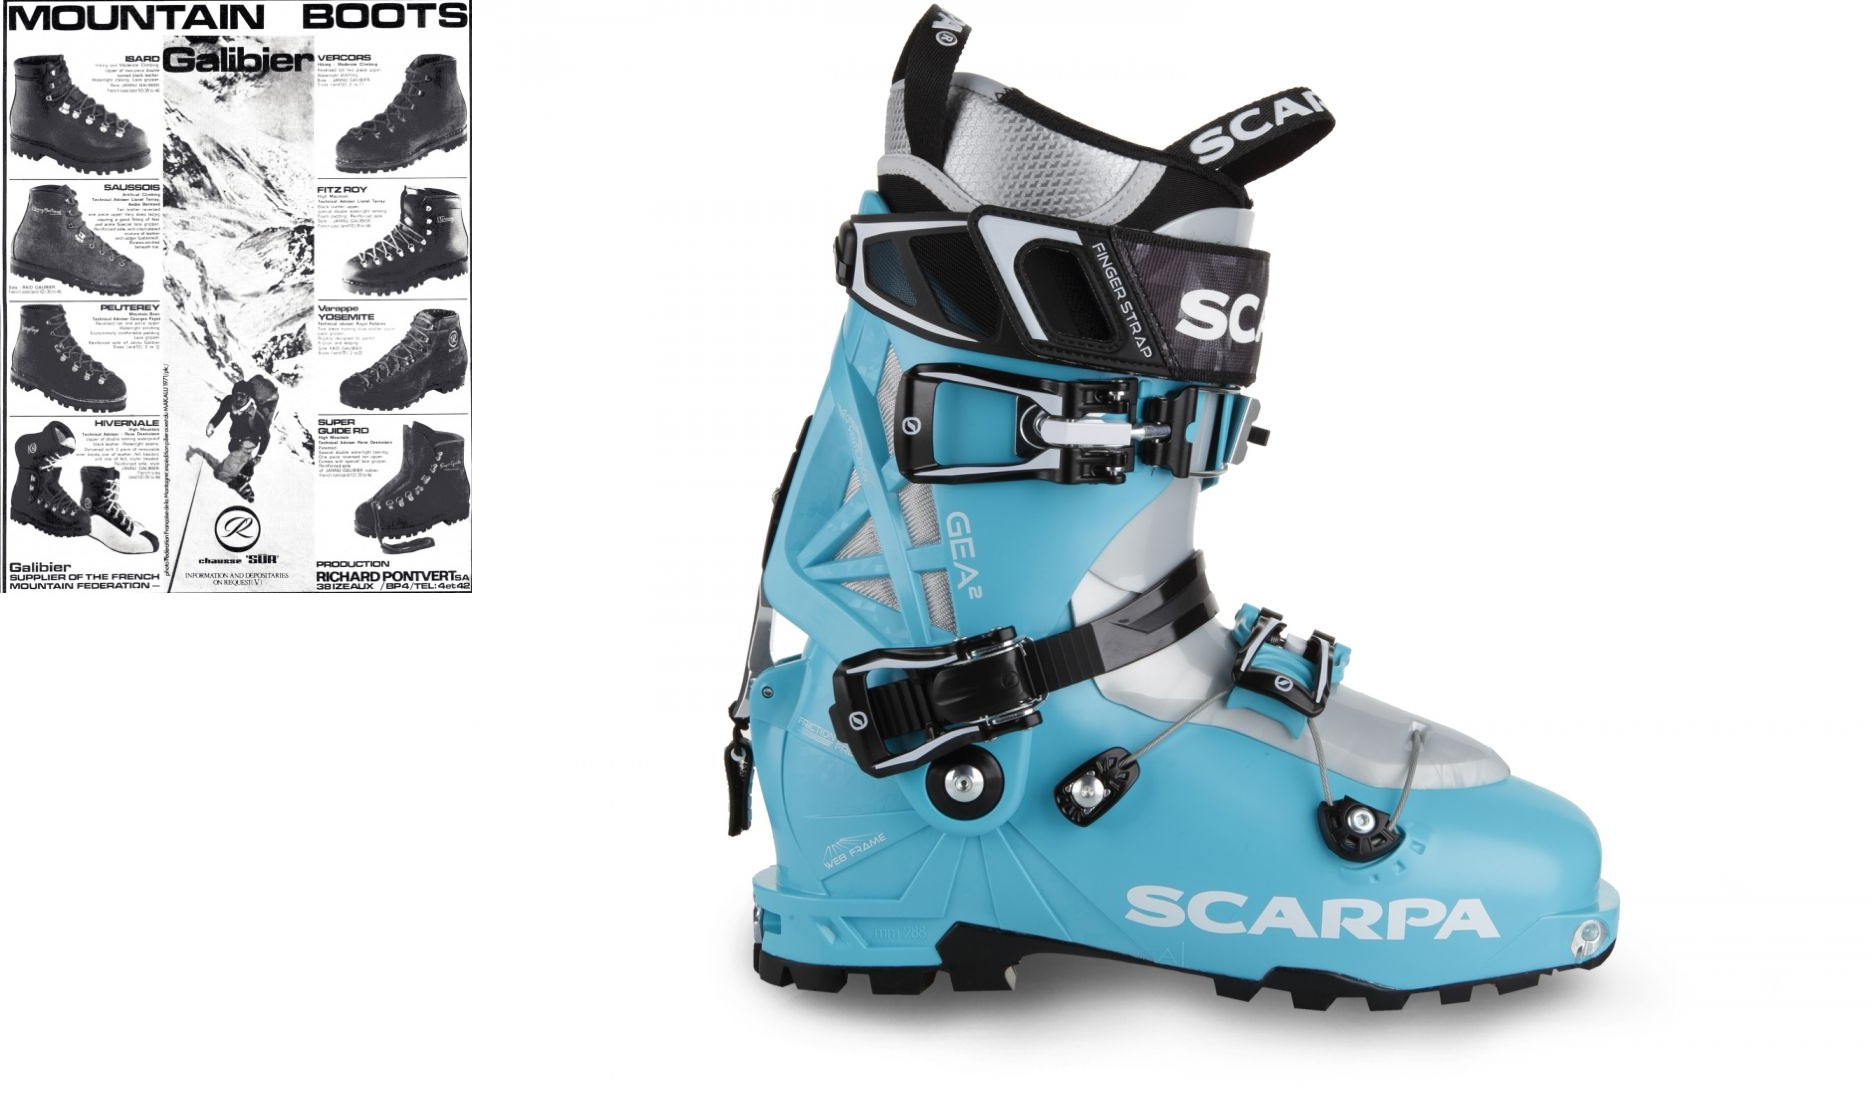 Galibier Mountain Boots and Scarpa Gea Alpine Touring Boots